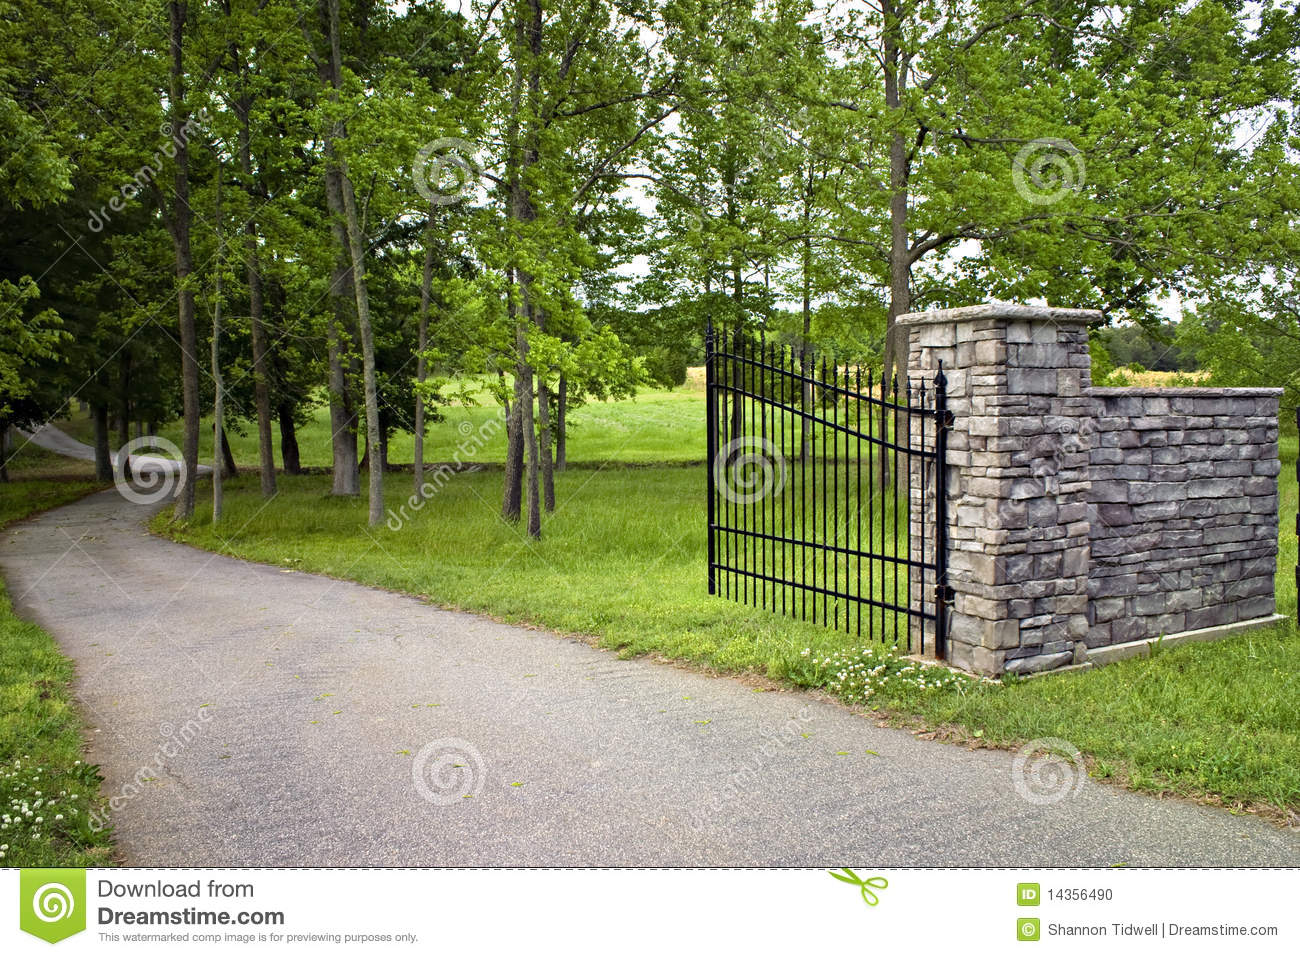 Laterite stone brick wall stock images image 35510874 - Gated Driveway Stock Photo Image 14356490